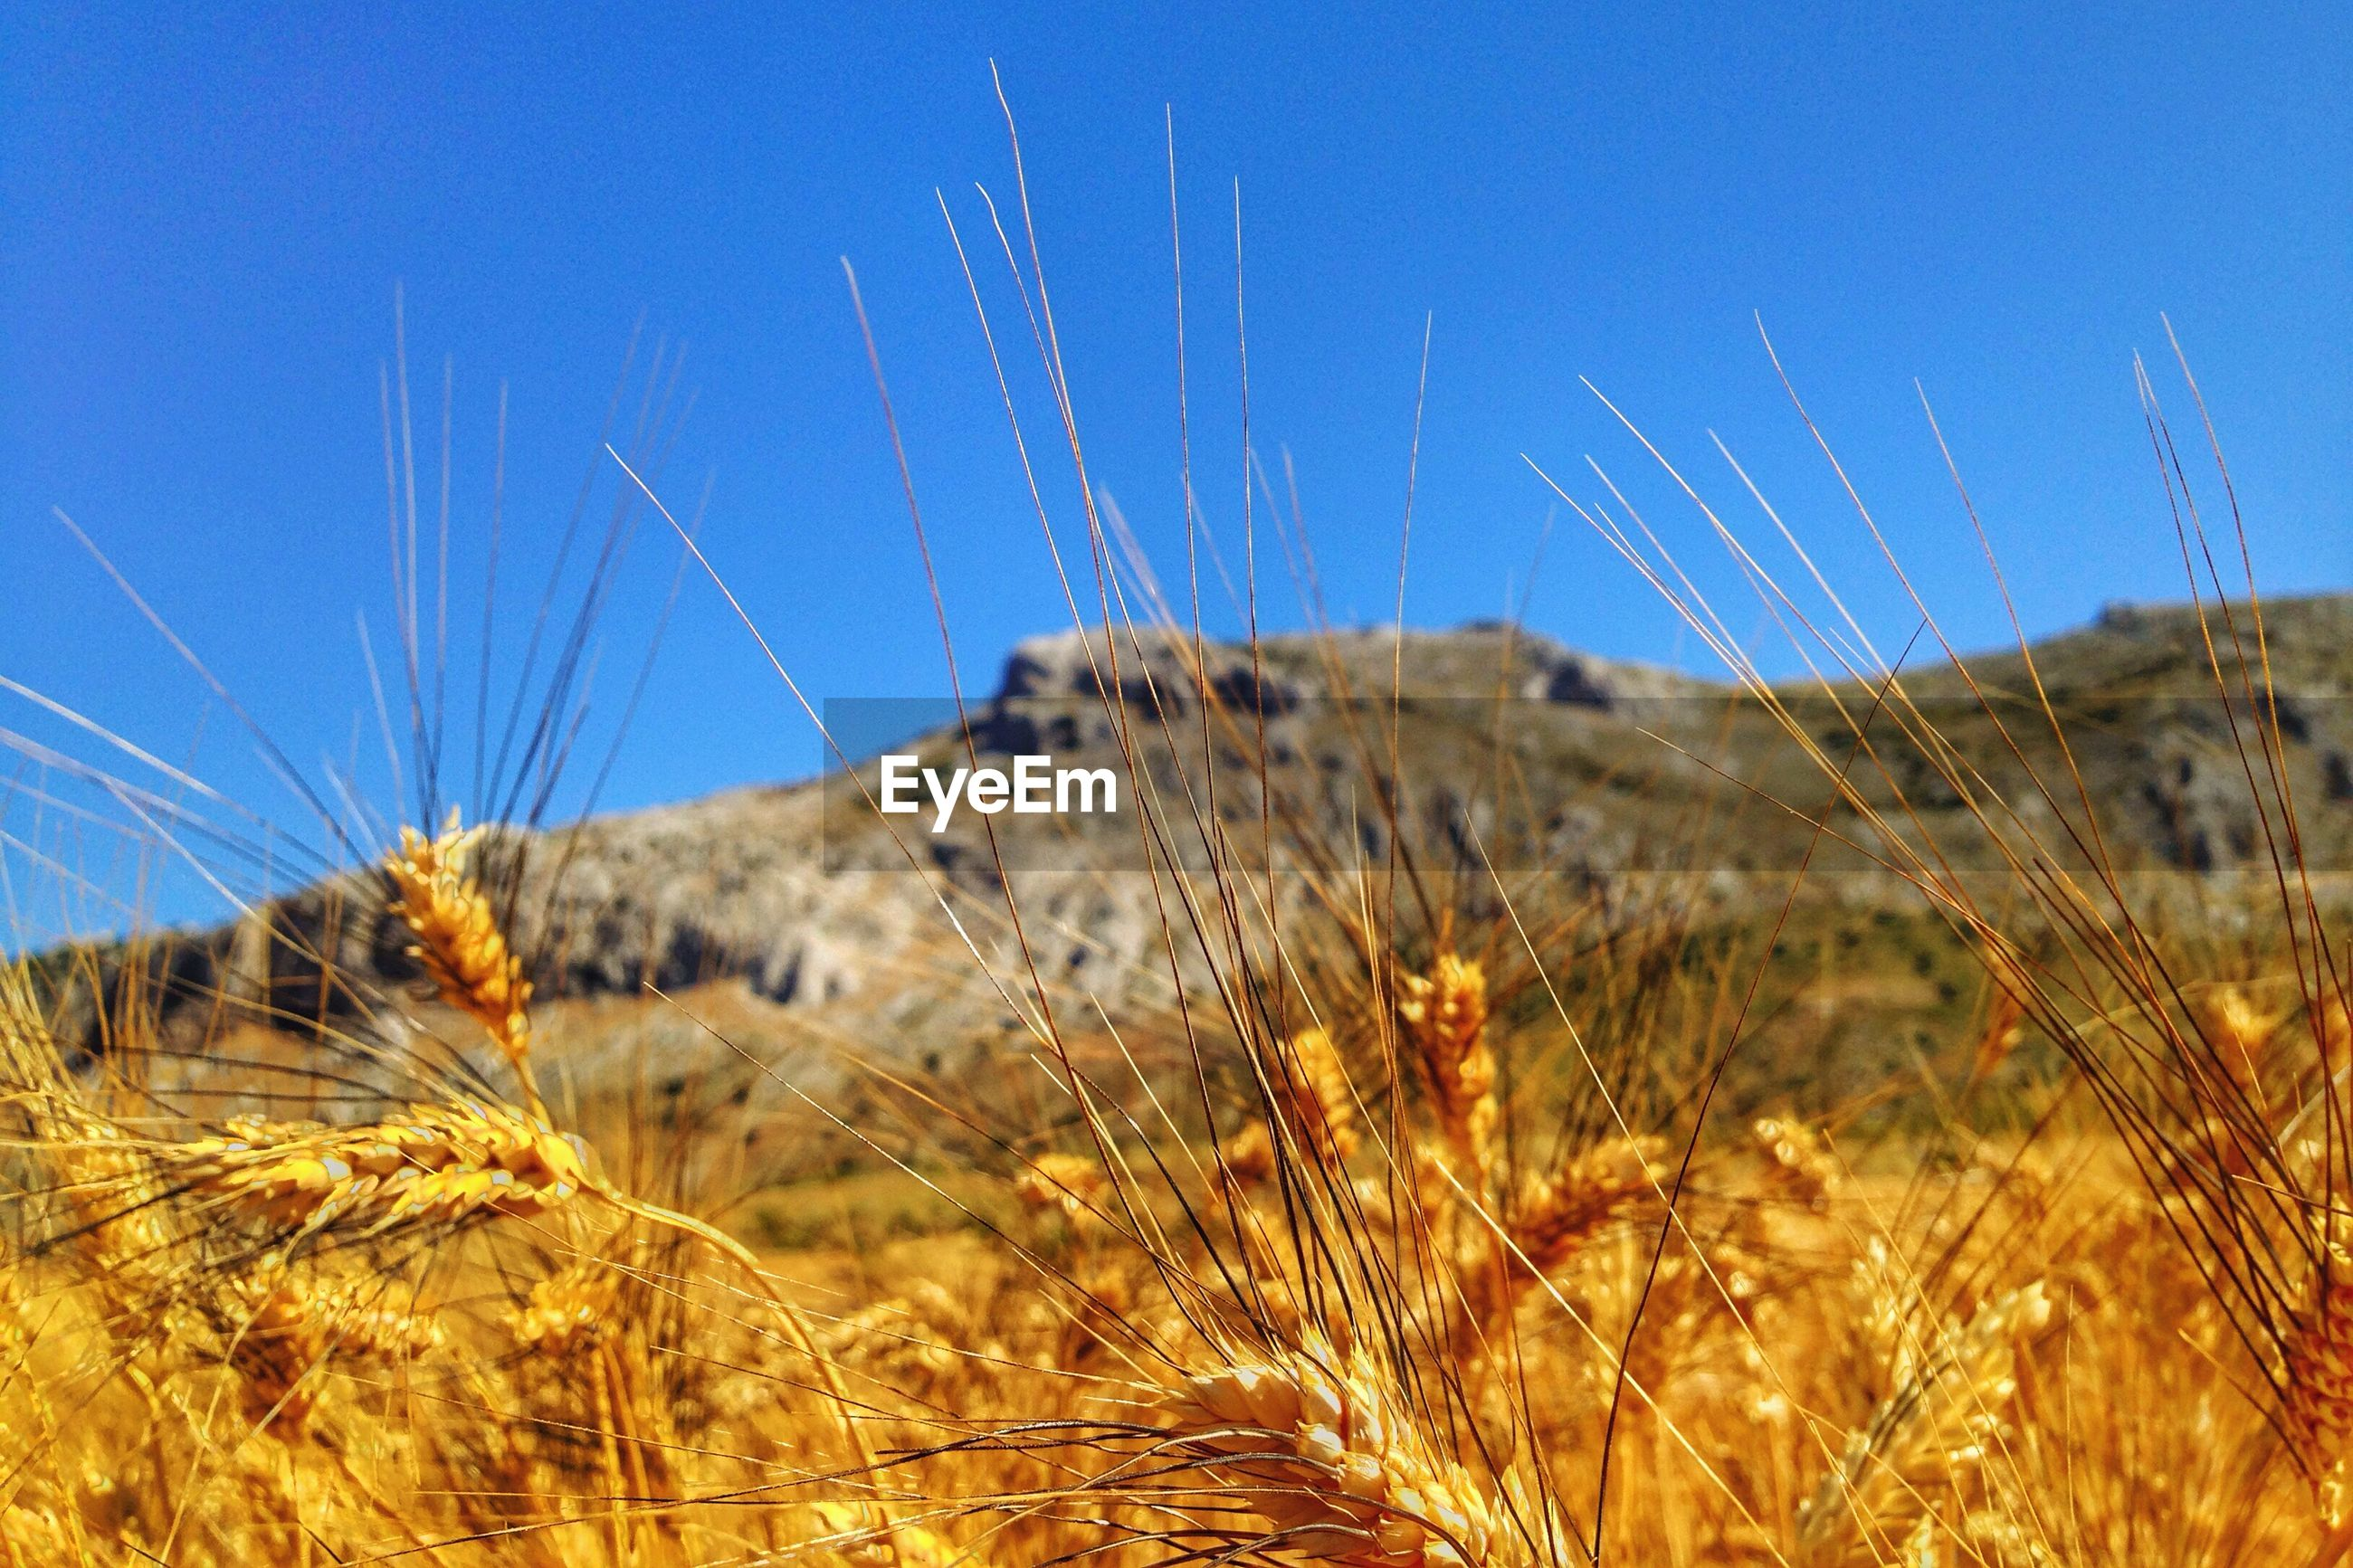 Wheat crops on field against clear sky